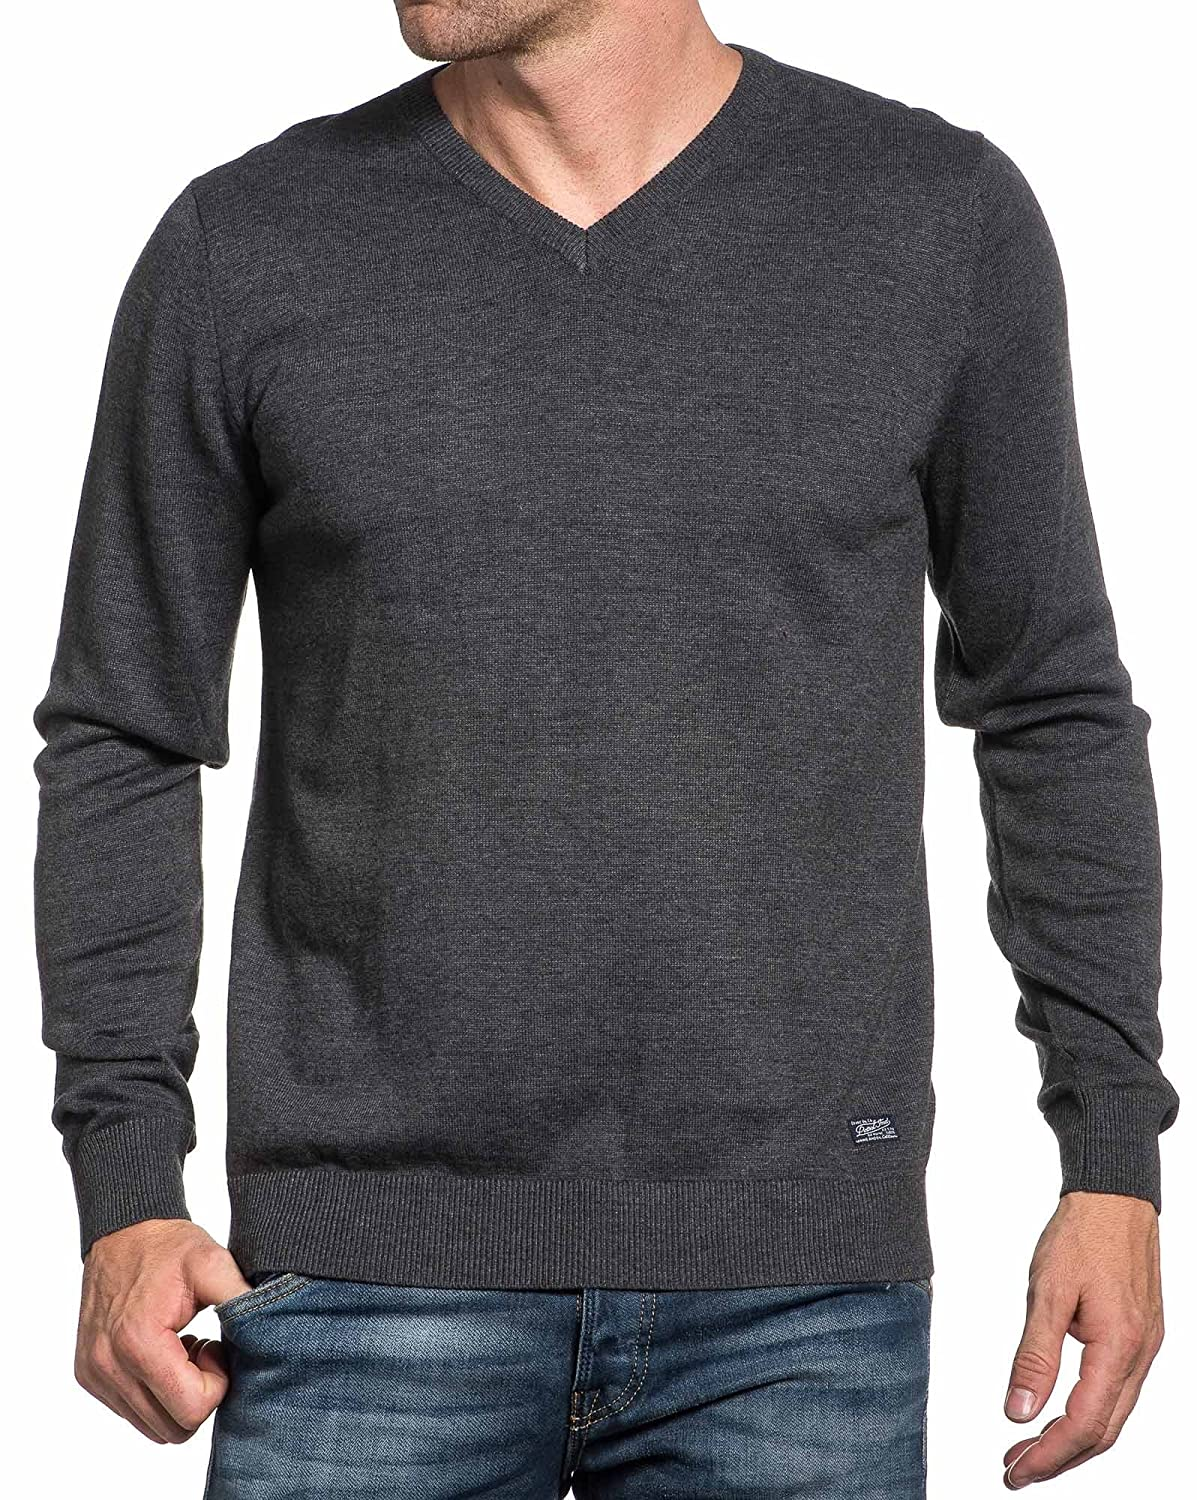 Petrol Industries - fine gray sweater plain V-neck Men